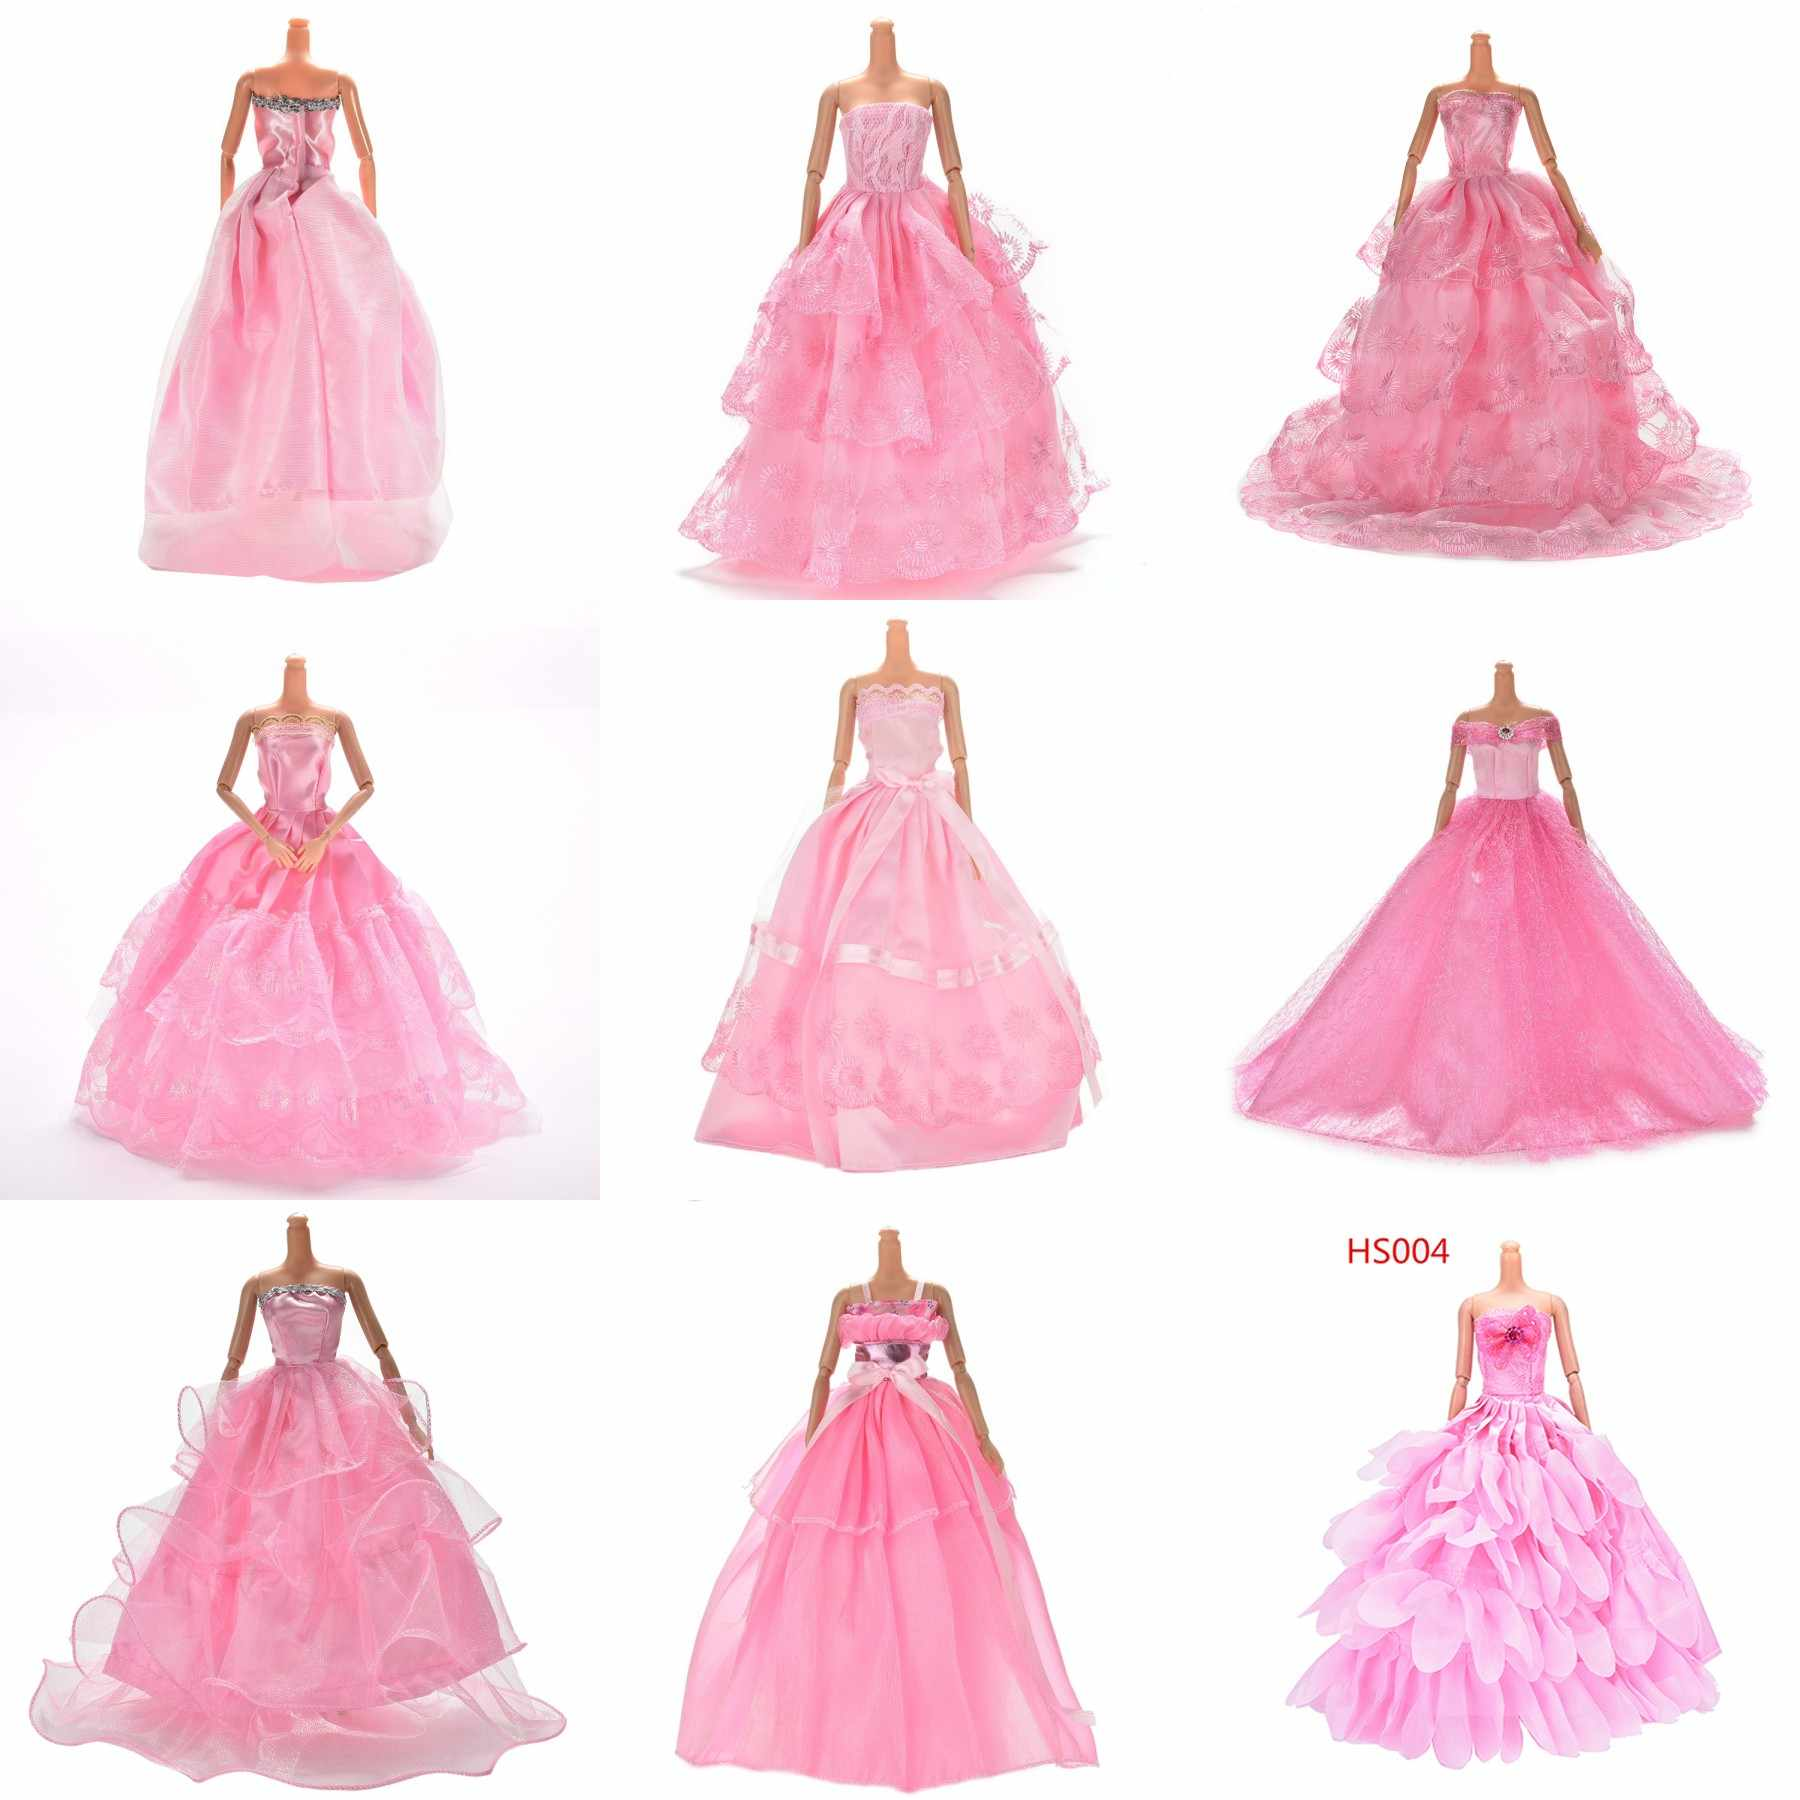 1PCS Pink Color Handmade Doll Long Dress Clothes Evening Wedding Dress Party Dress For Girl Doll Accessories